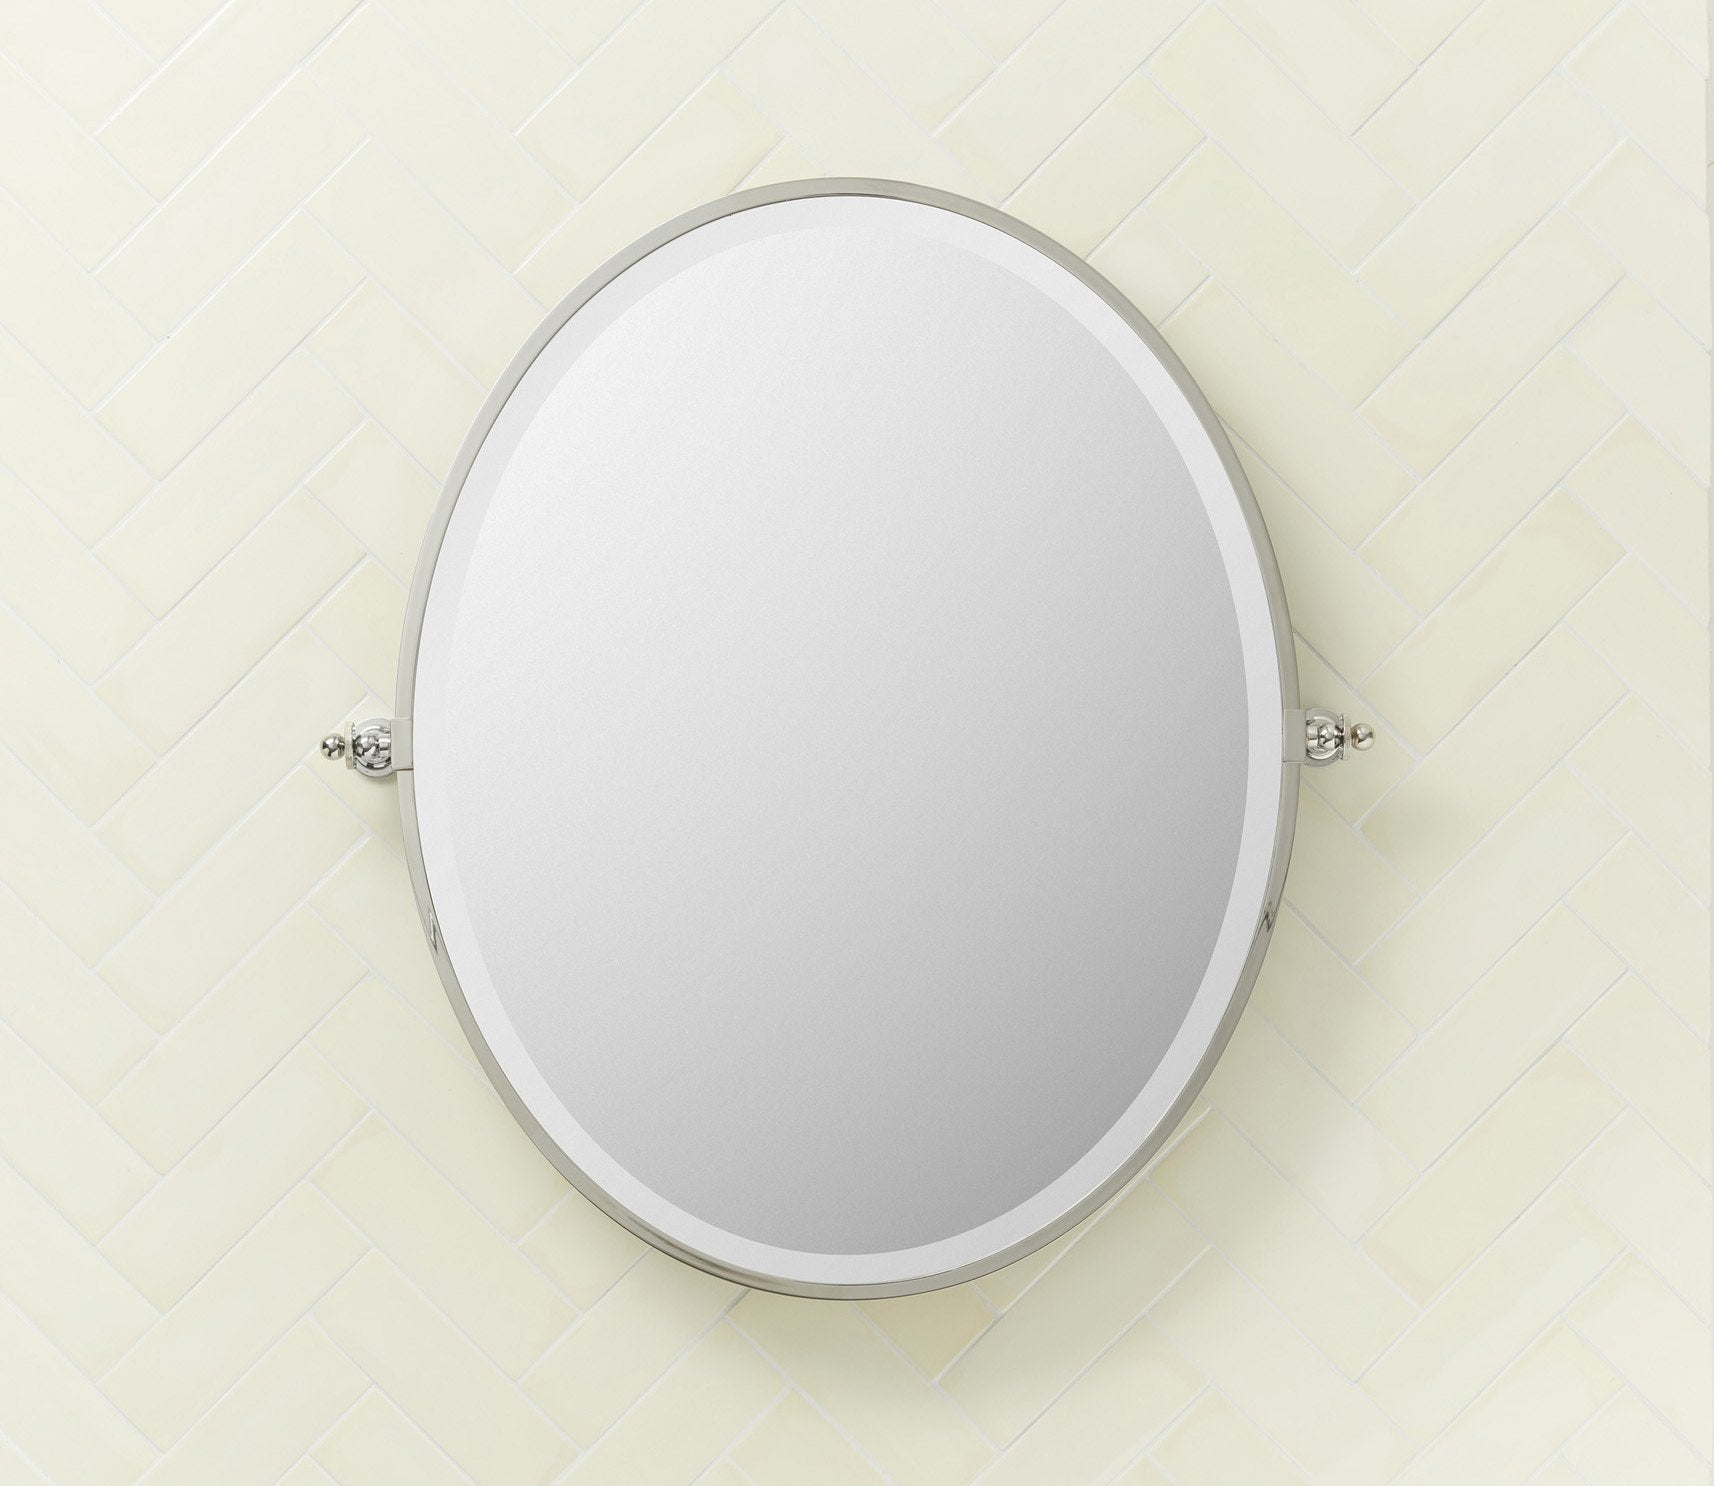 Hanbury Oval Tilting Mirror Product Image 2